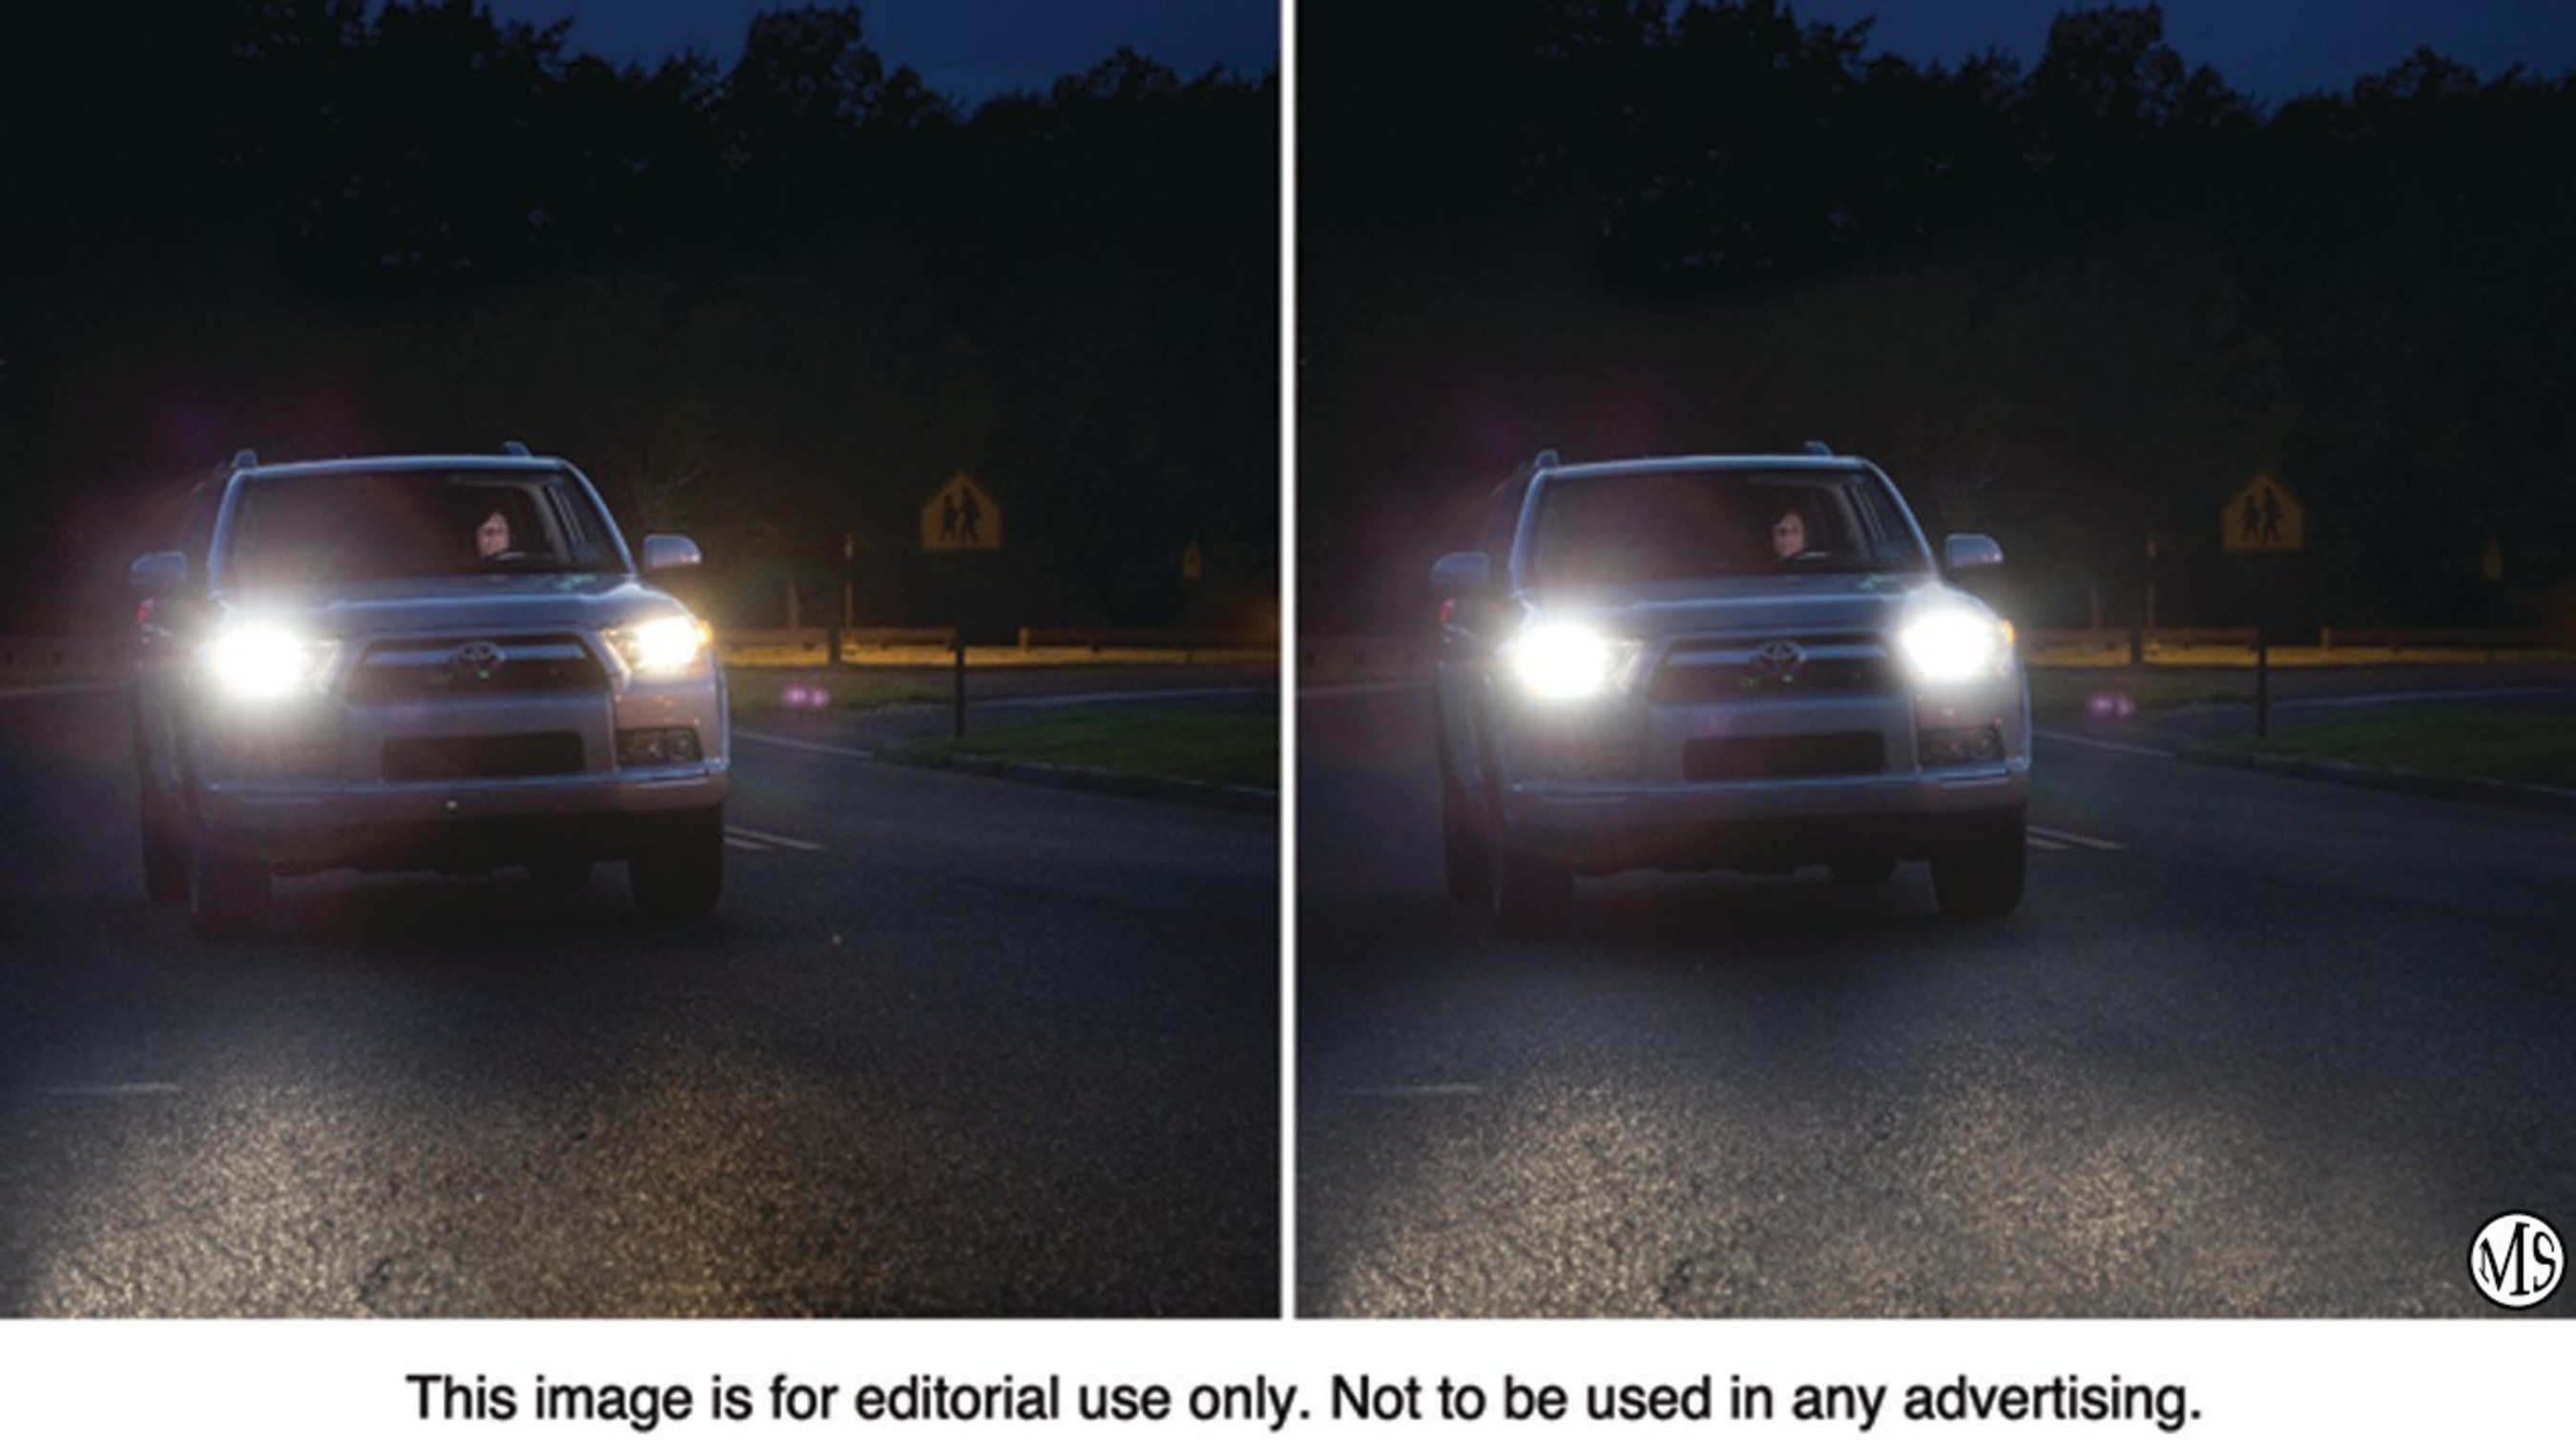 Replacing just the failed bulb (left) can result in unbalanced and inconsistent lighting. Changing headlight bulbs in pairs (right) assures a properly lit road and the full safety benefit of the vehicle's headlights.